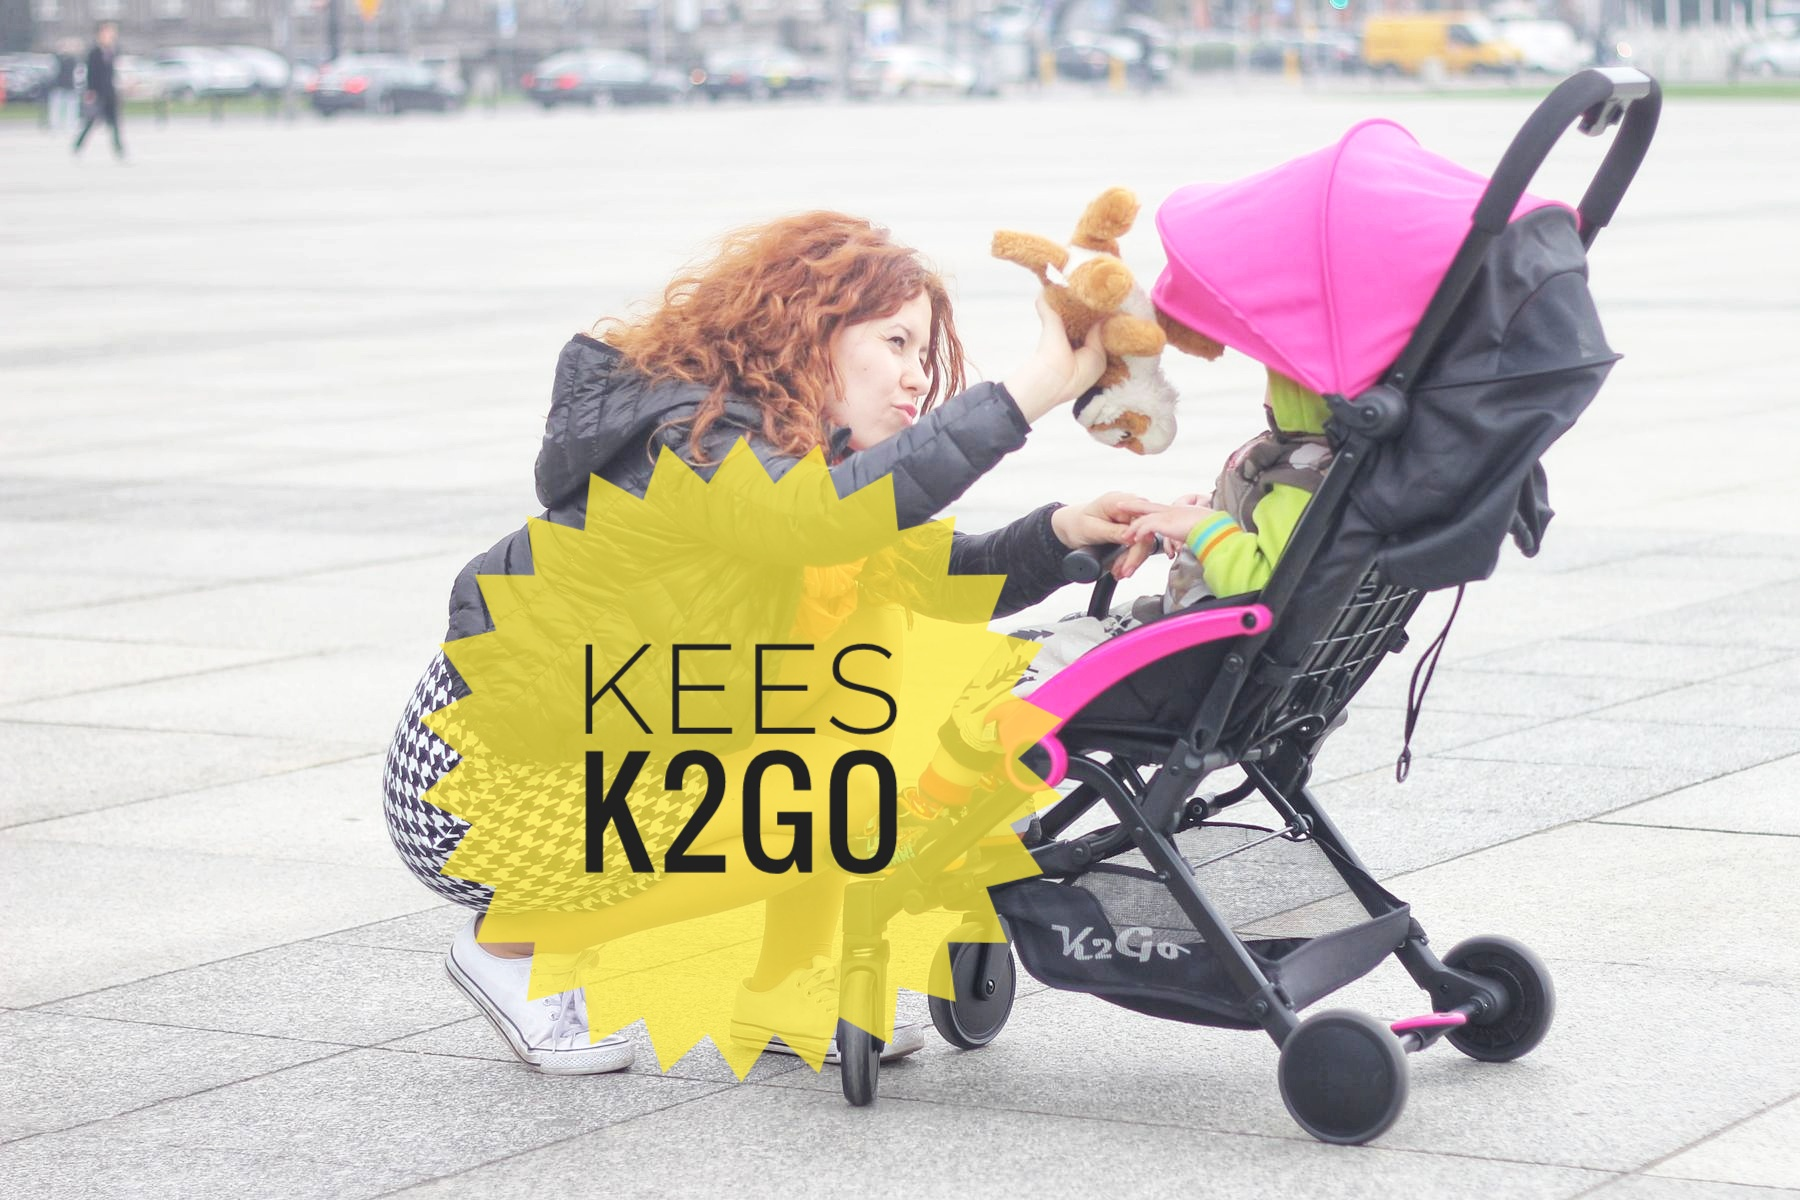 Kees K2Go